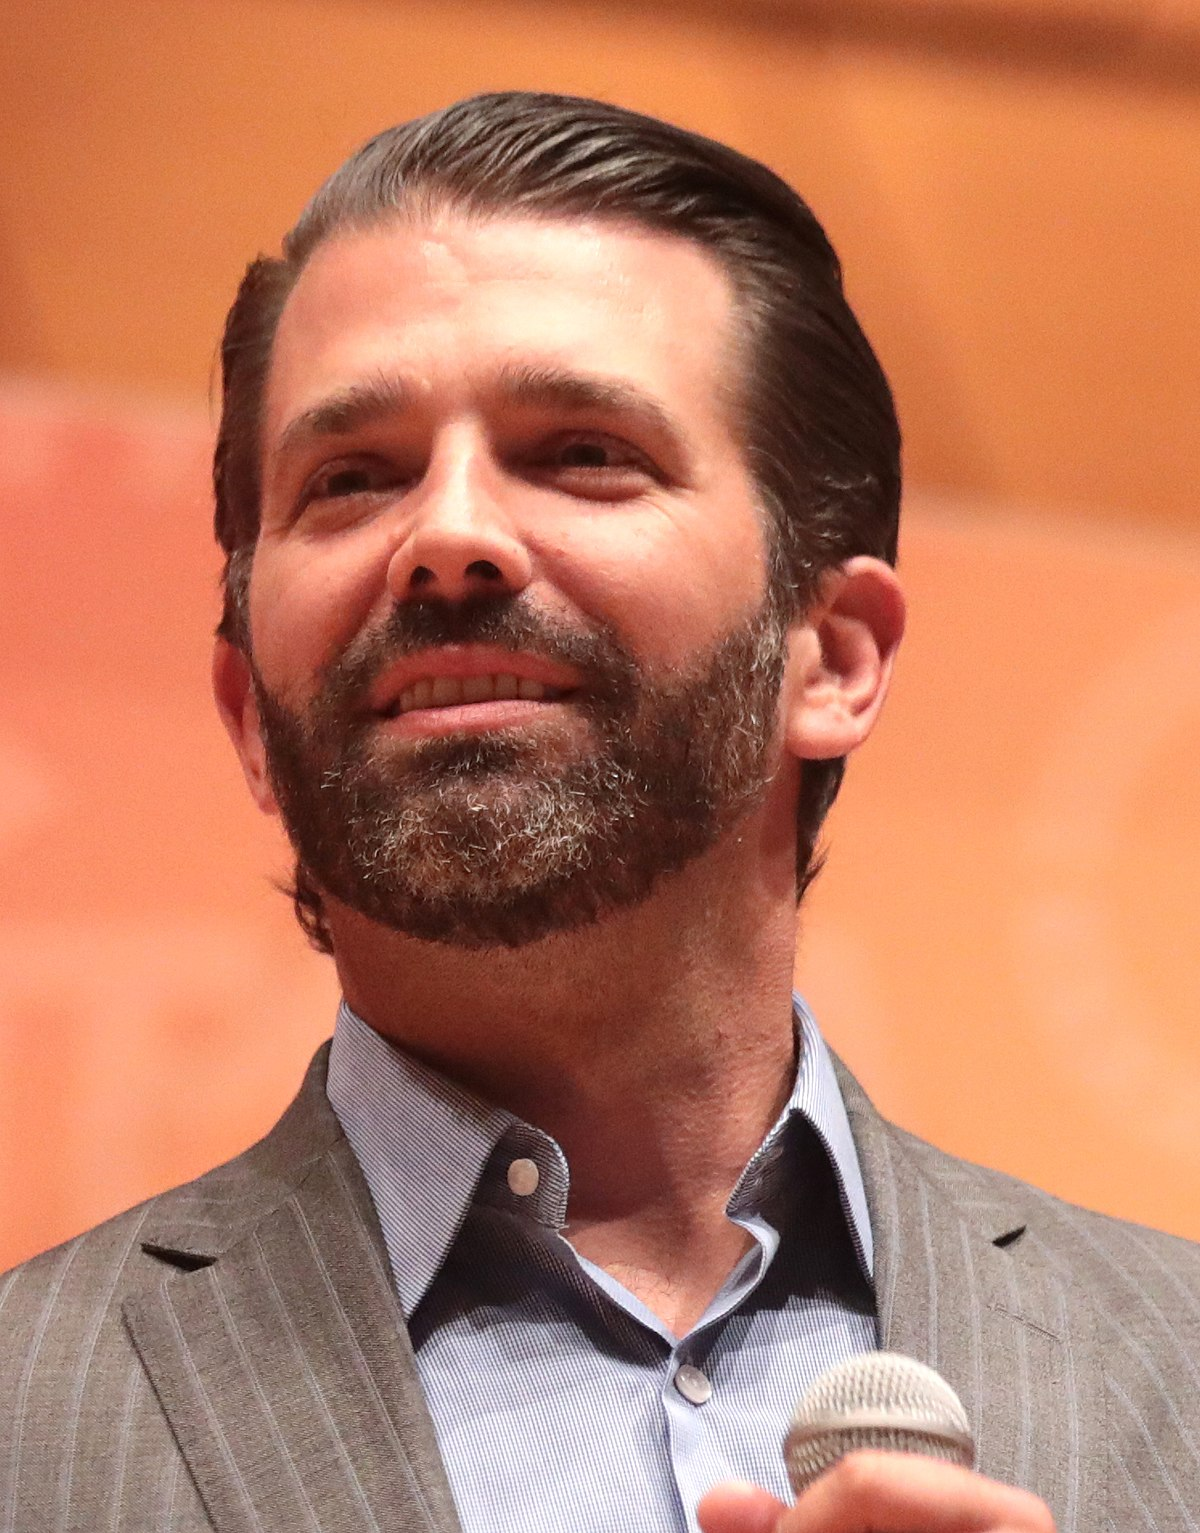 Donald Trump Jr. - Wikipedia